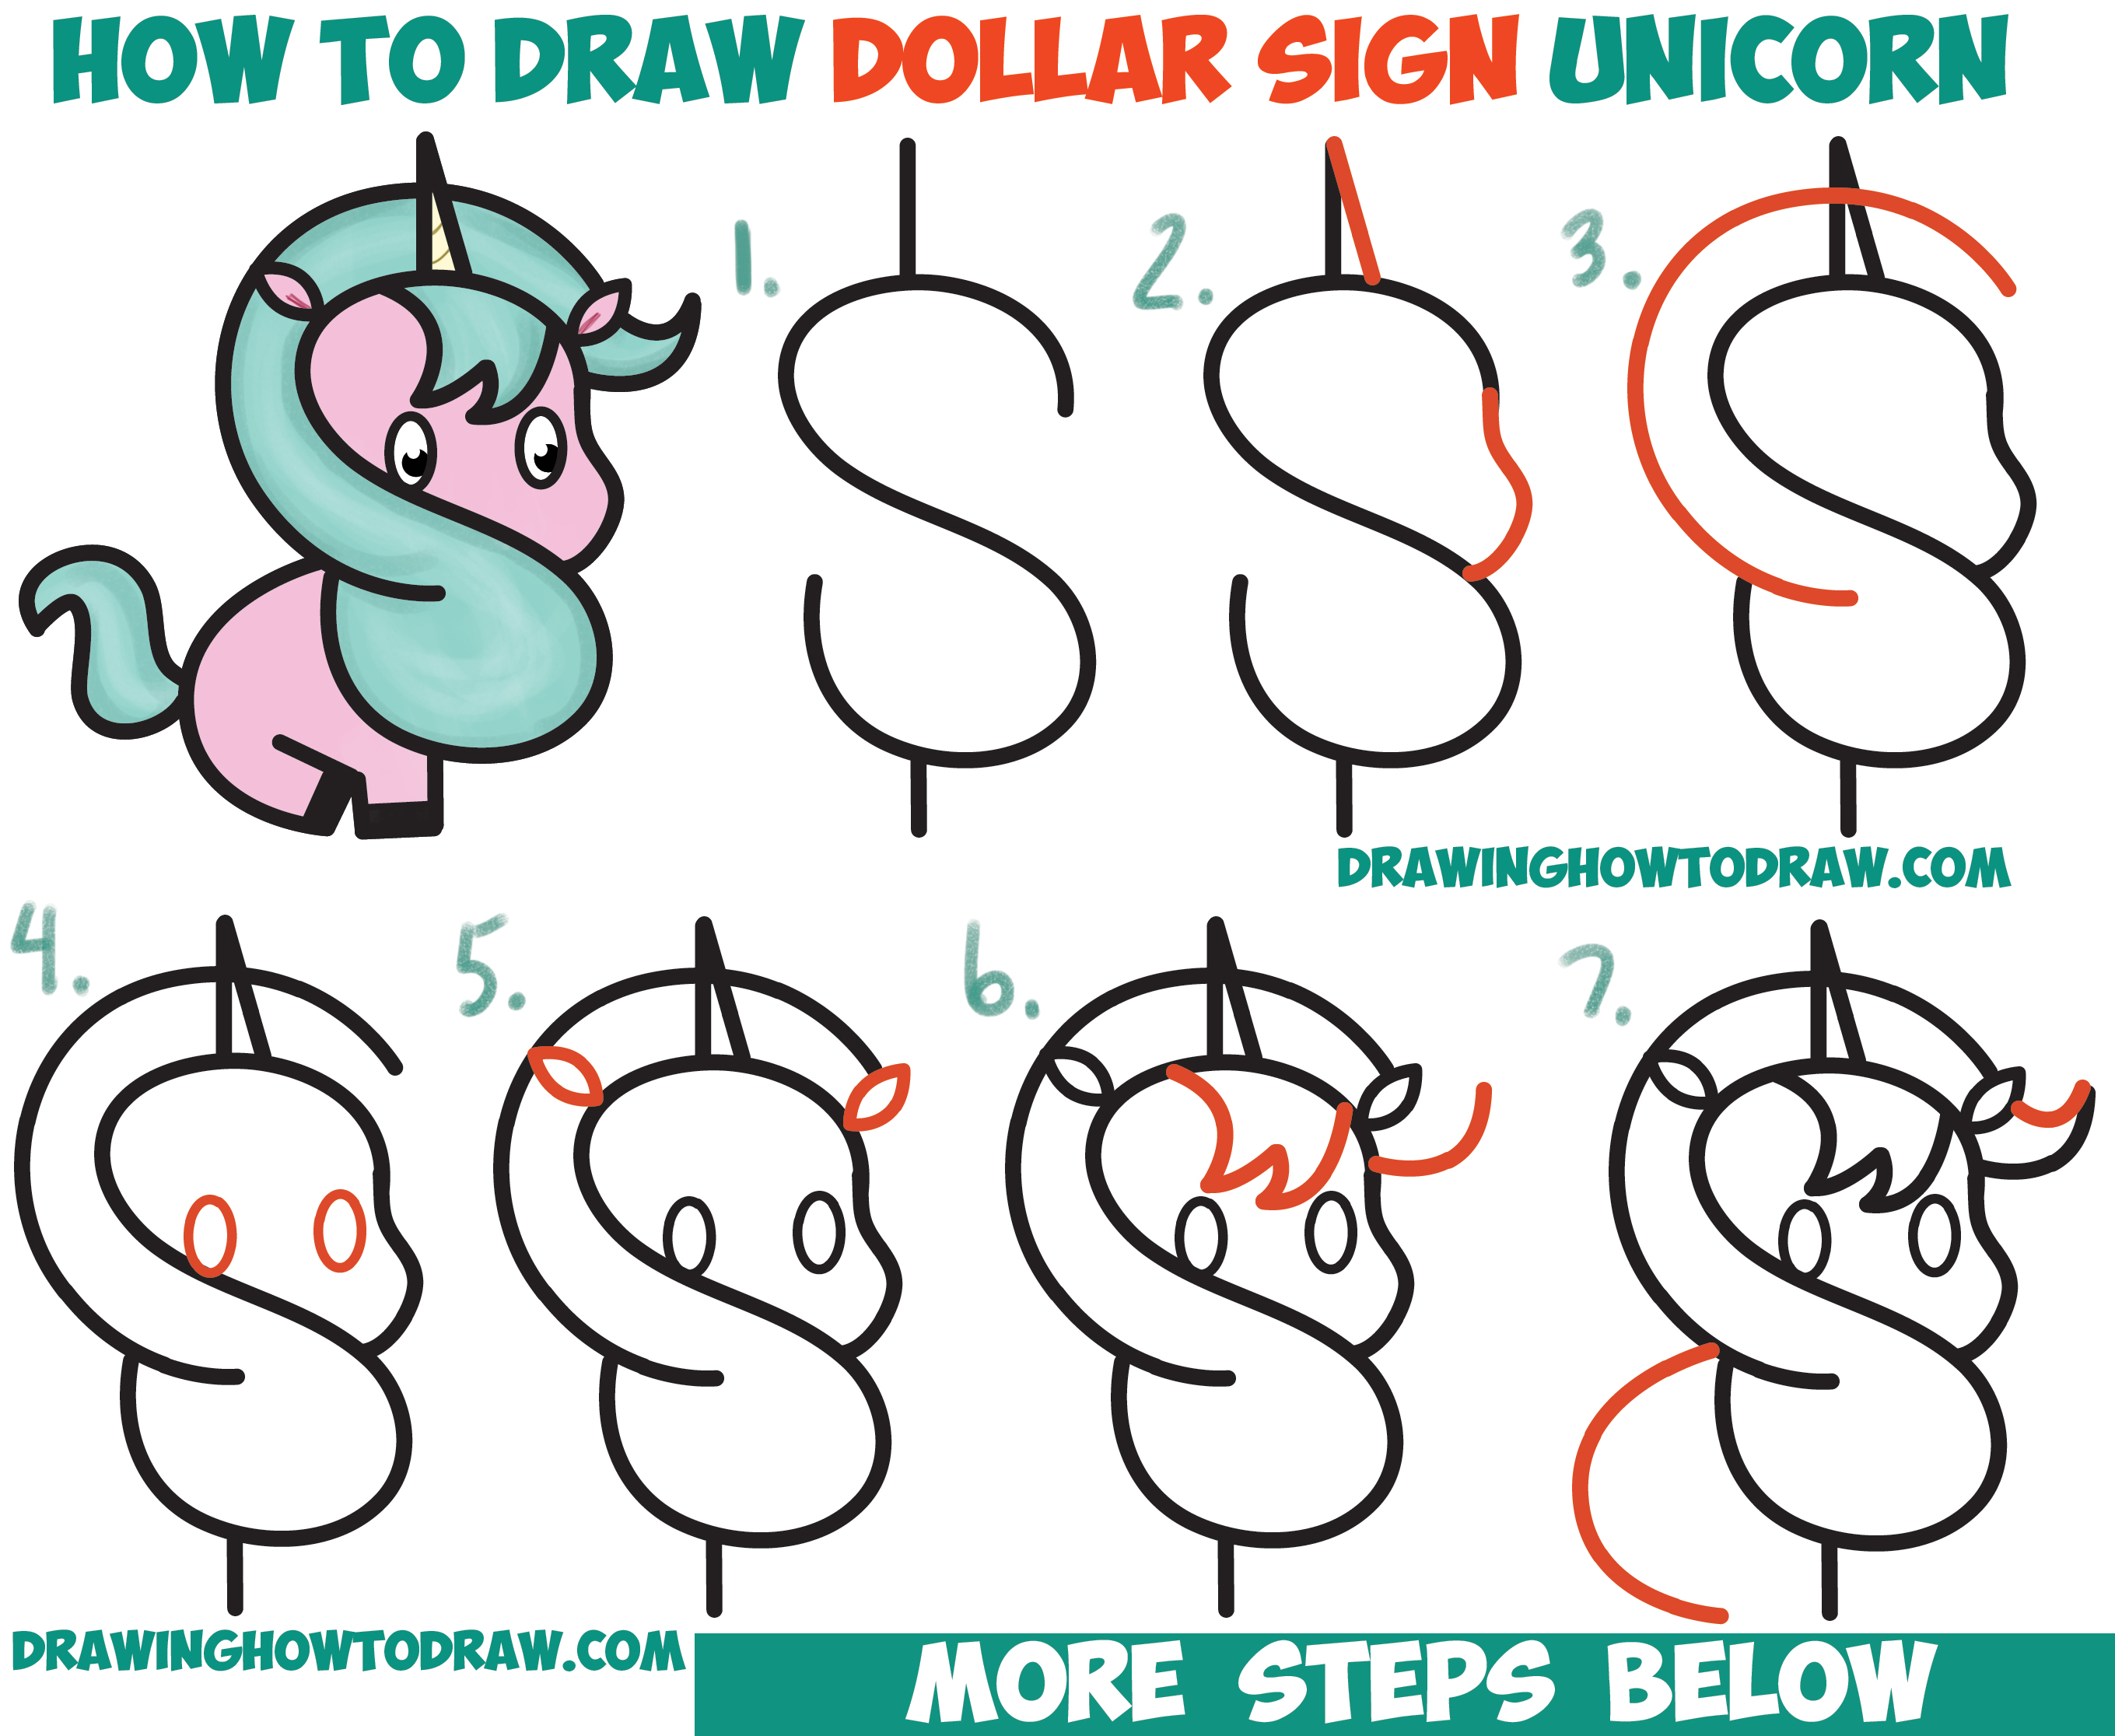 how to draw a cute cartoon unicorn kawaii from a dollar sign easy step - Images For Kids Drawing